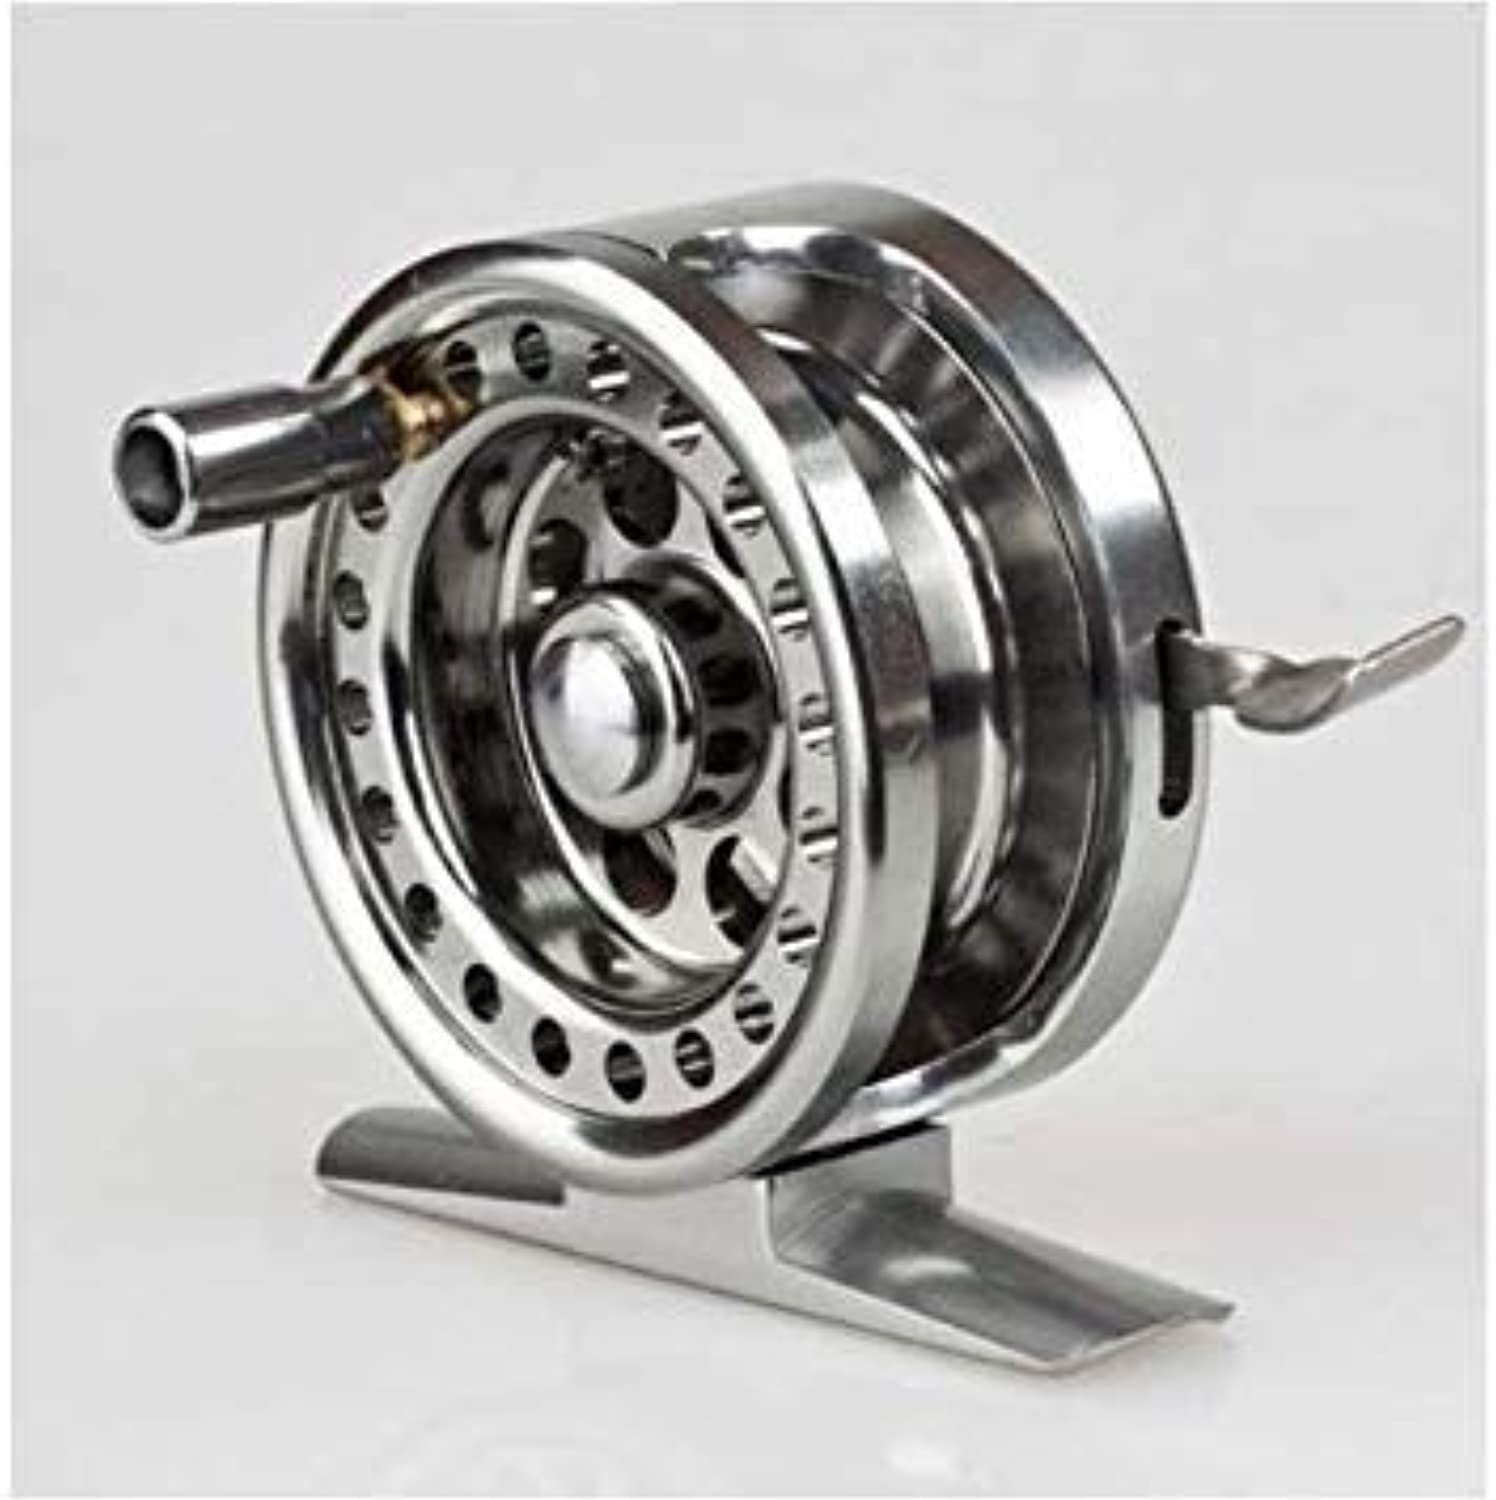 GEOPONICS 2018 New Left Right Handed LureCasting Fishing Reel Vessel 5.3 1 Drum Wheel Saltwater Fish Line Coil color Silver